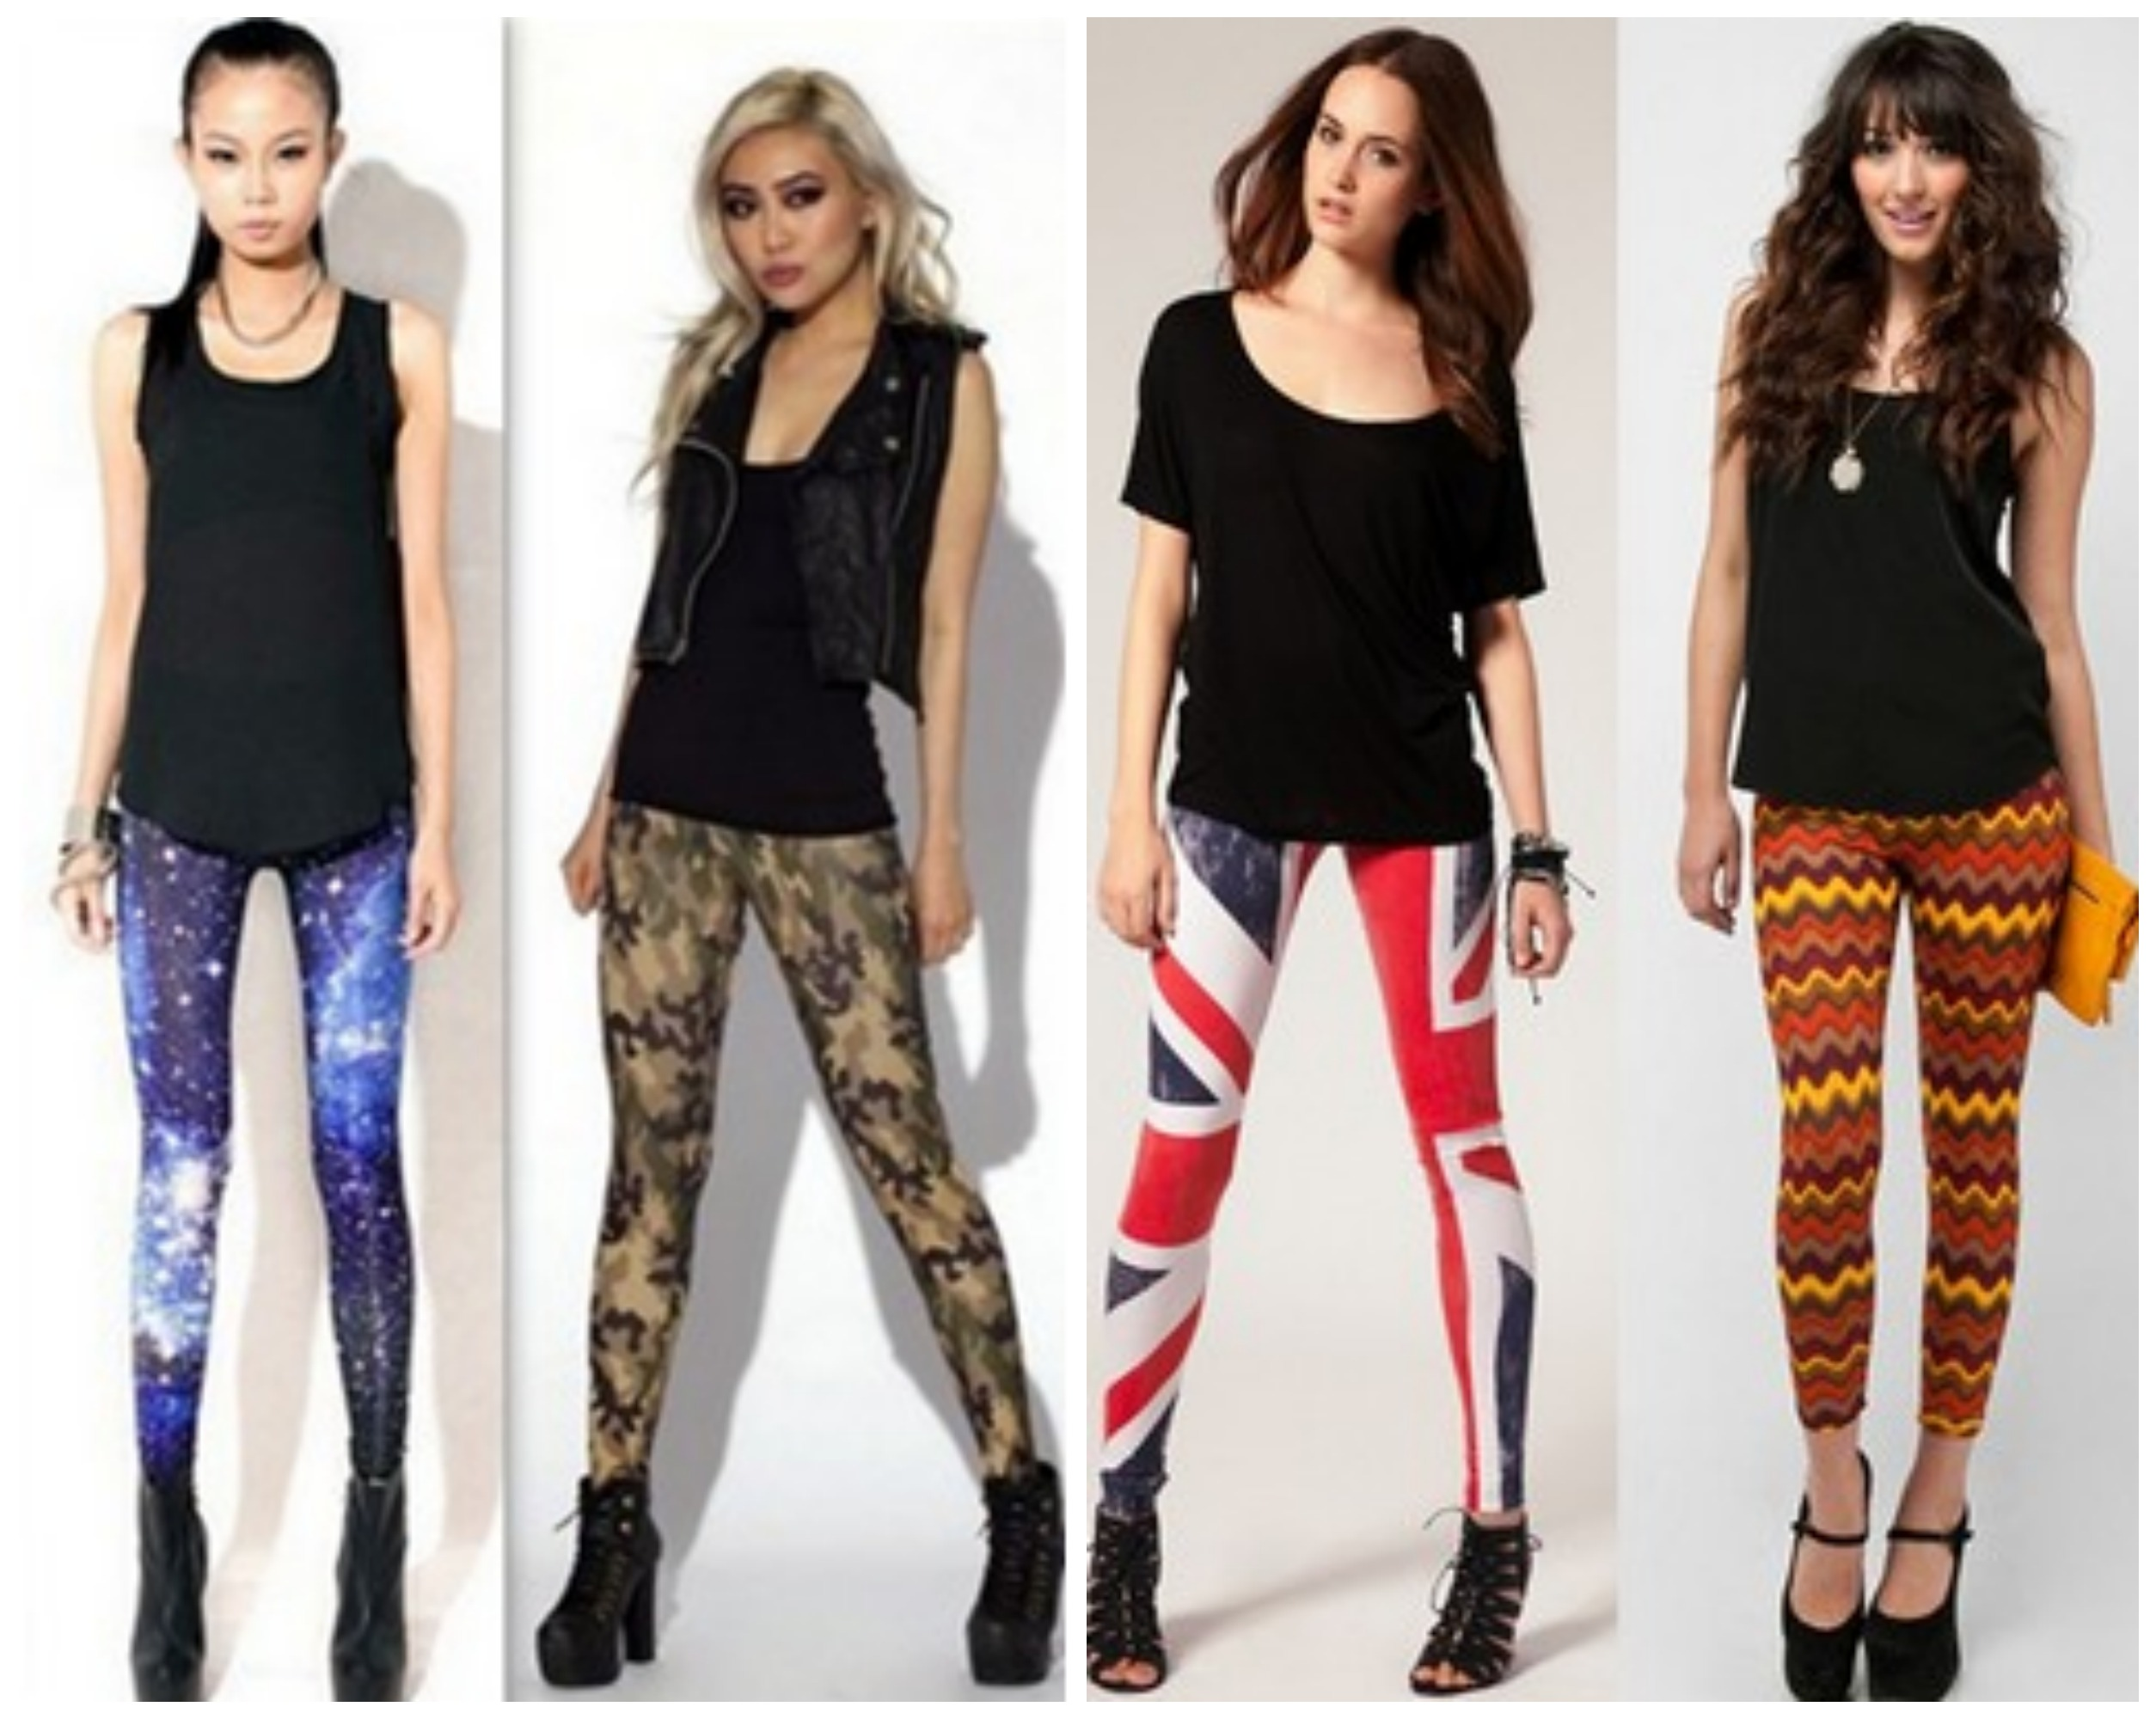 LEGGINGS! [Photo Credit: www.rachelslookbook.com]